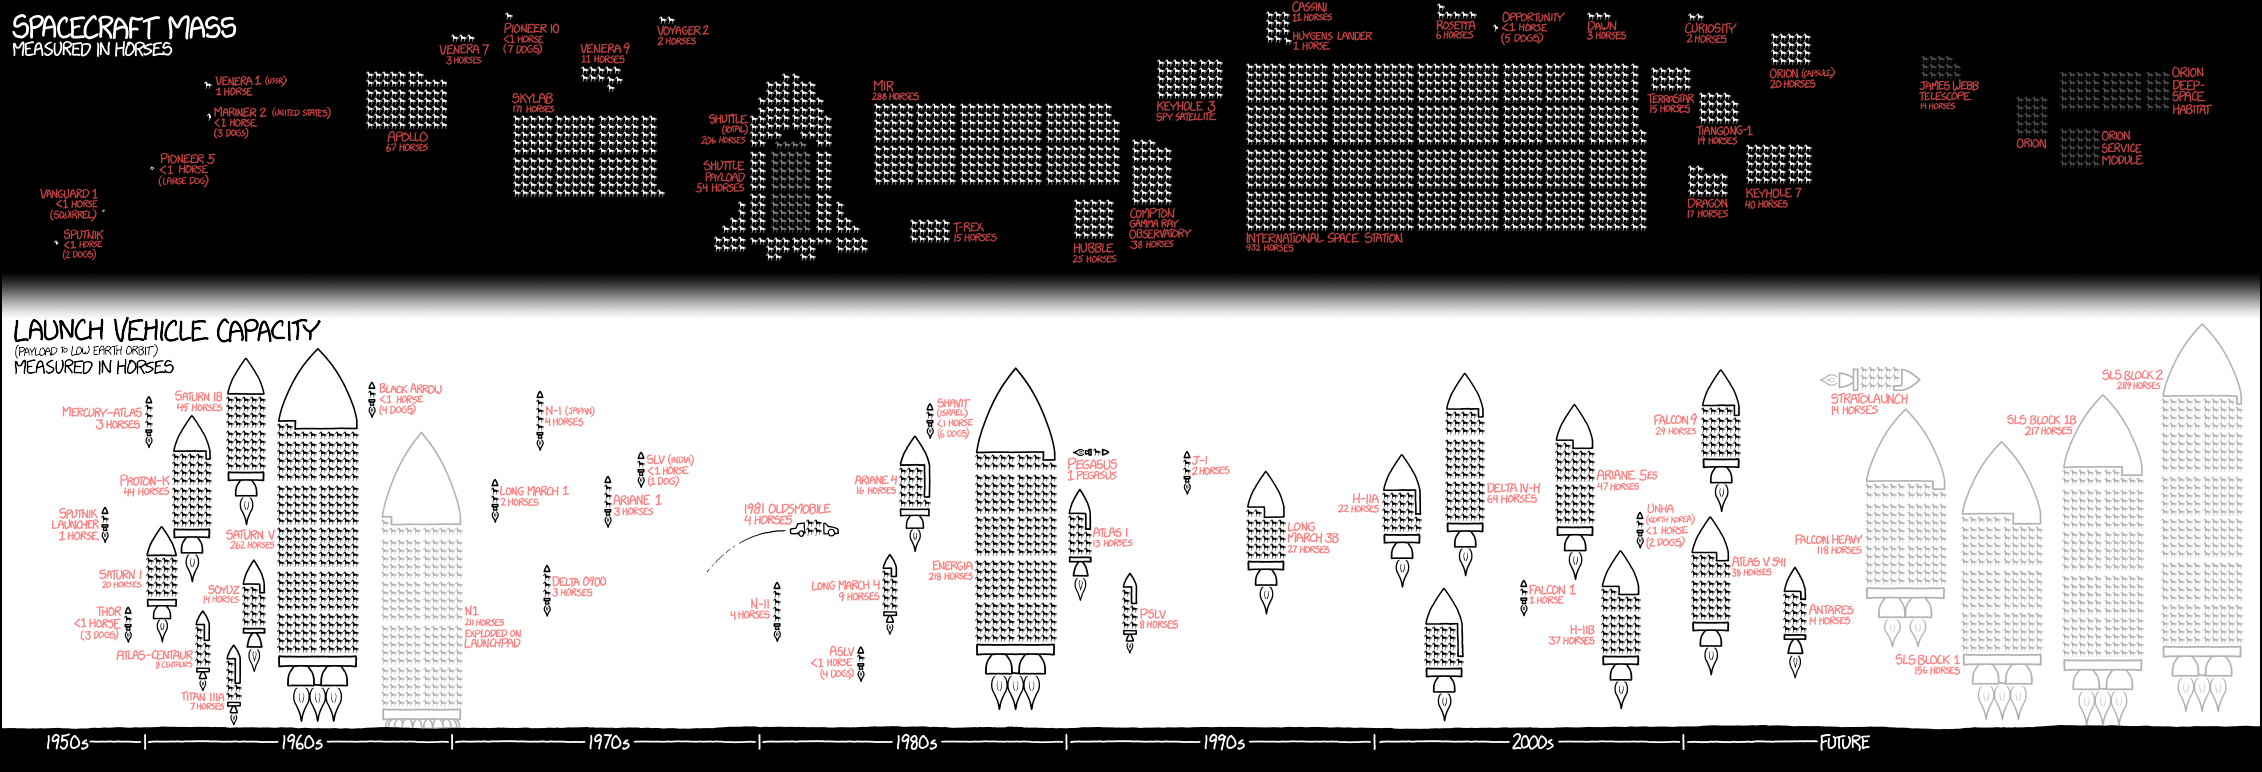 The Staggering Mass Of The Craft We've Sent Into Space, Visualised